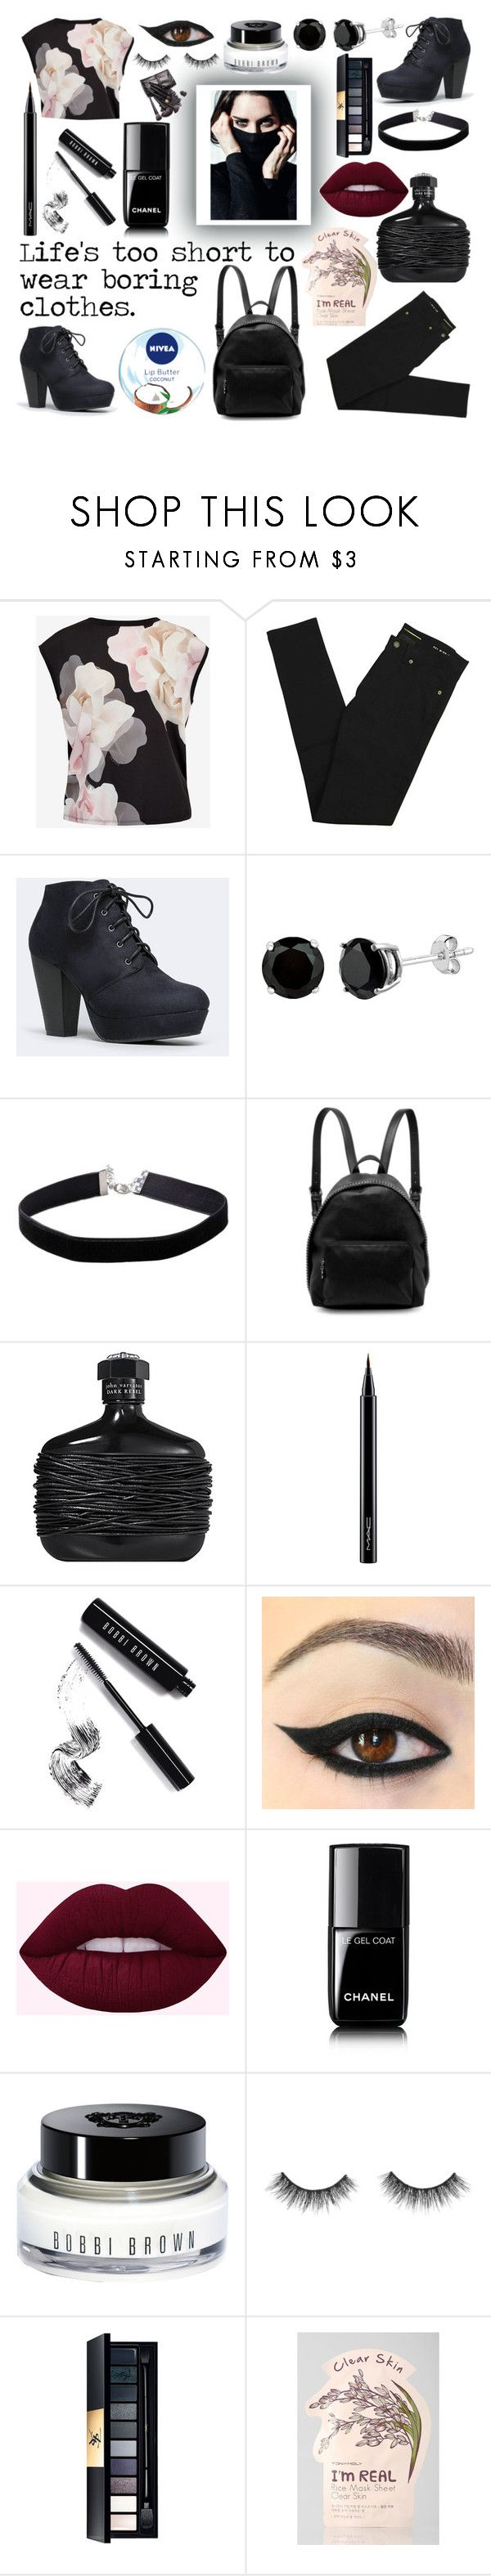 """""""Life's too short to wear boring clothes."""" by ramennoodley ❤ liked on Polyvore featuring Ted Baker, Yves Saint Laurent, Miss Selfridge, STELLA McCARTNEY, John Varvatos, MAC Cosmetics, Bobbi Brown Cosmetics, Nivea, Chanel and TONYMOLY"""